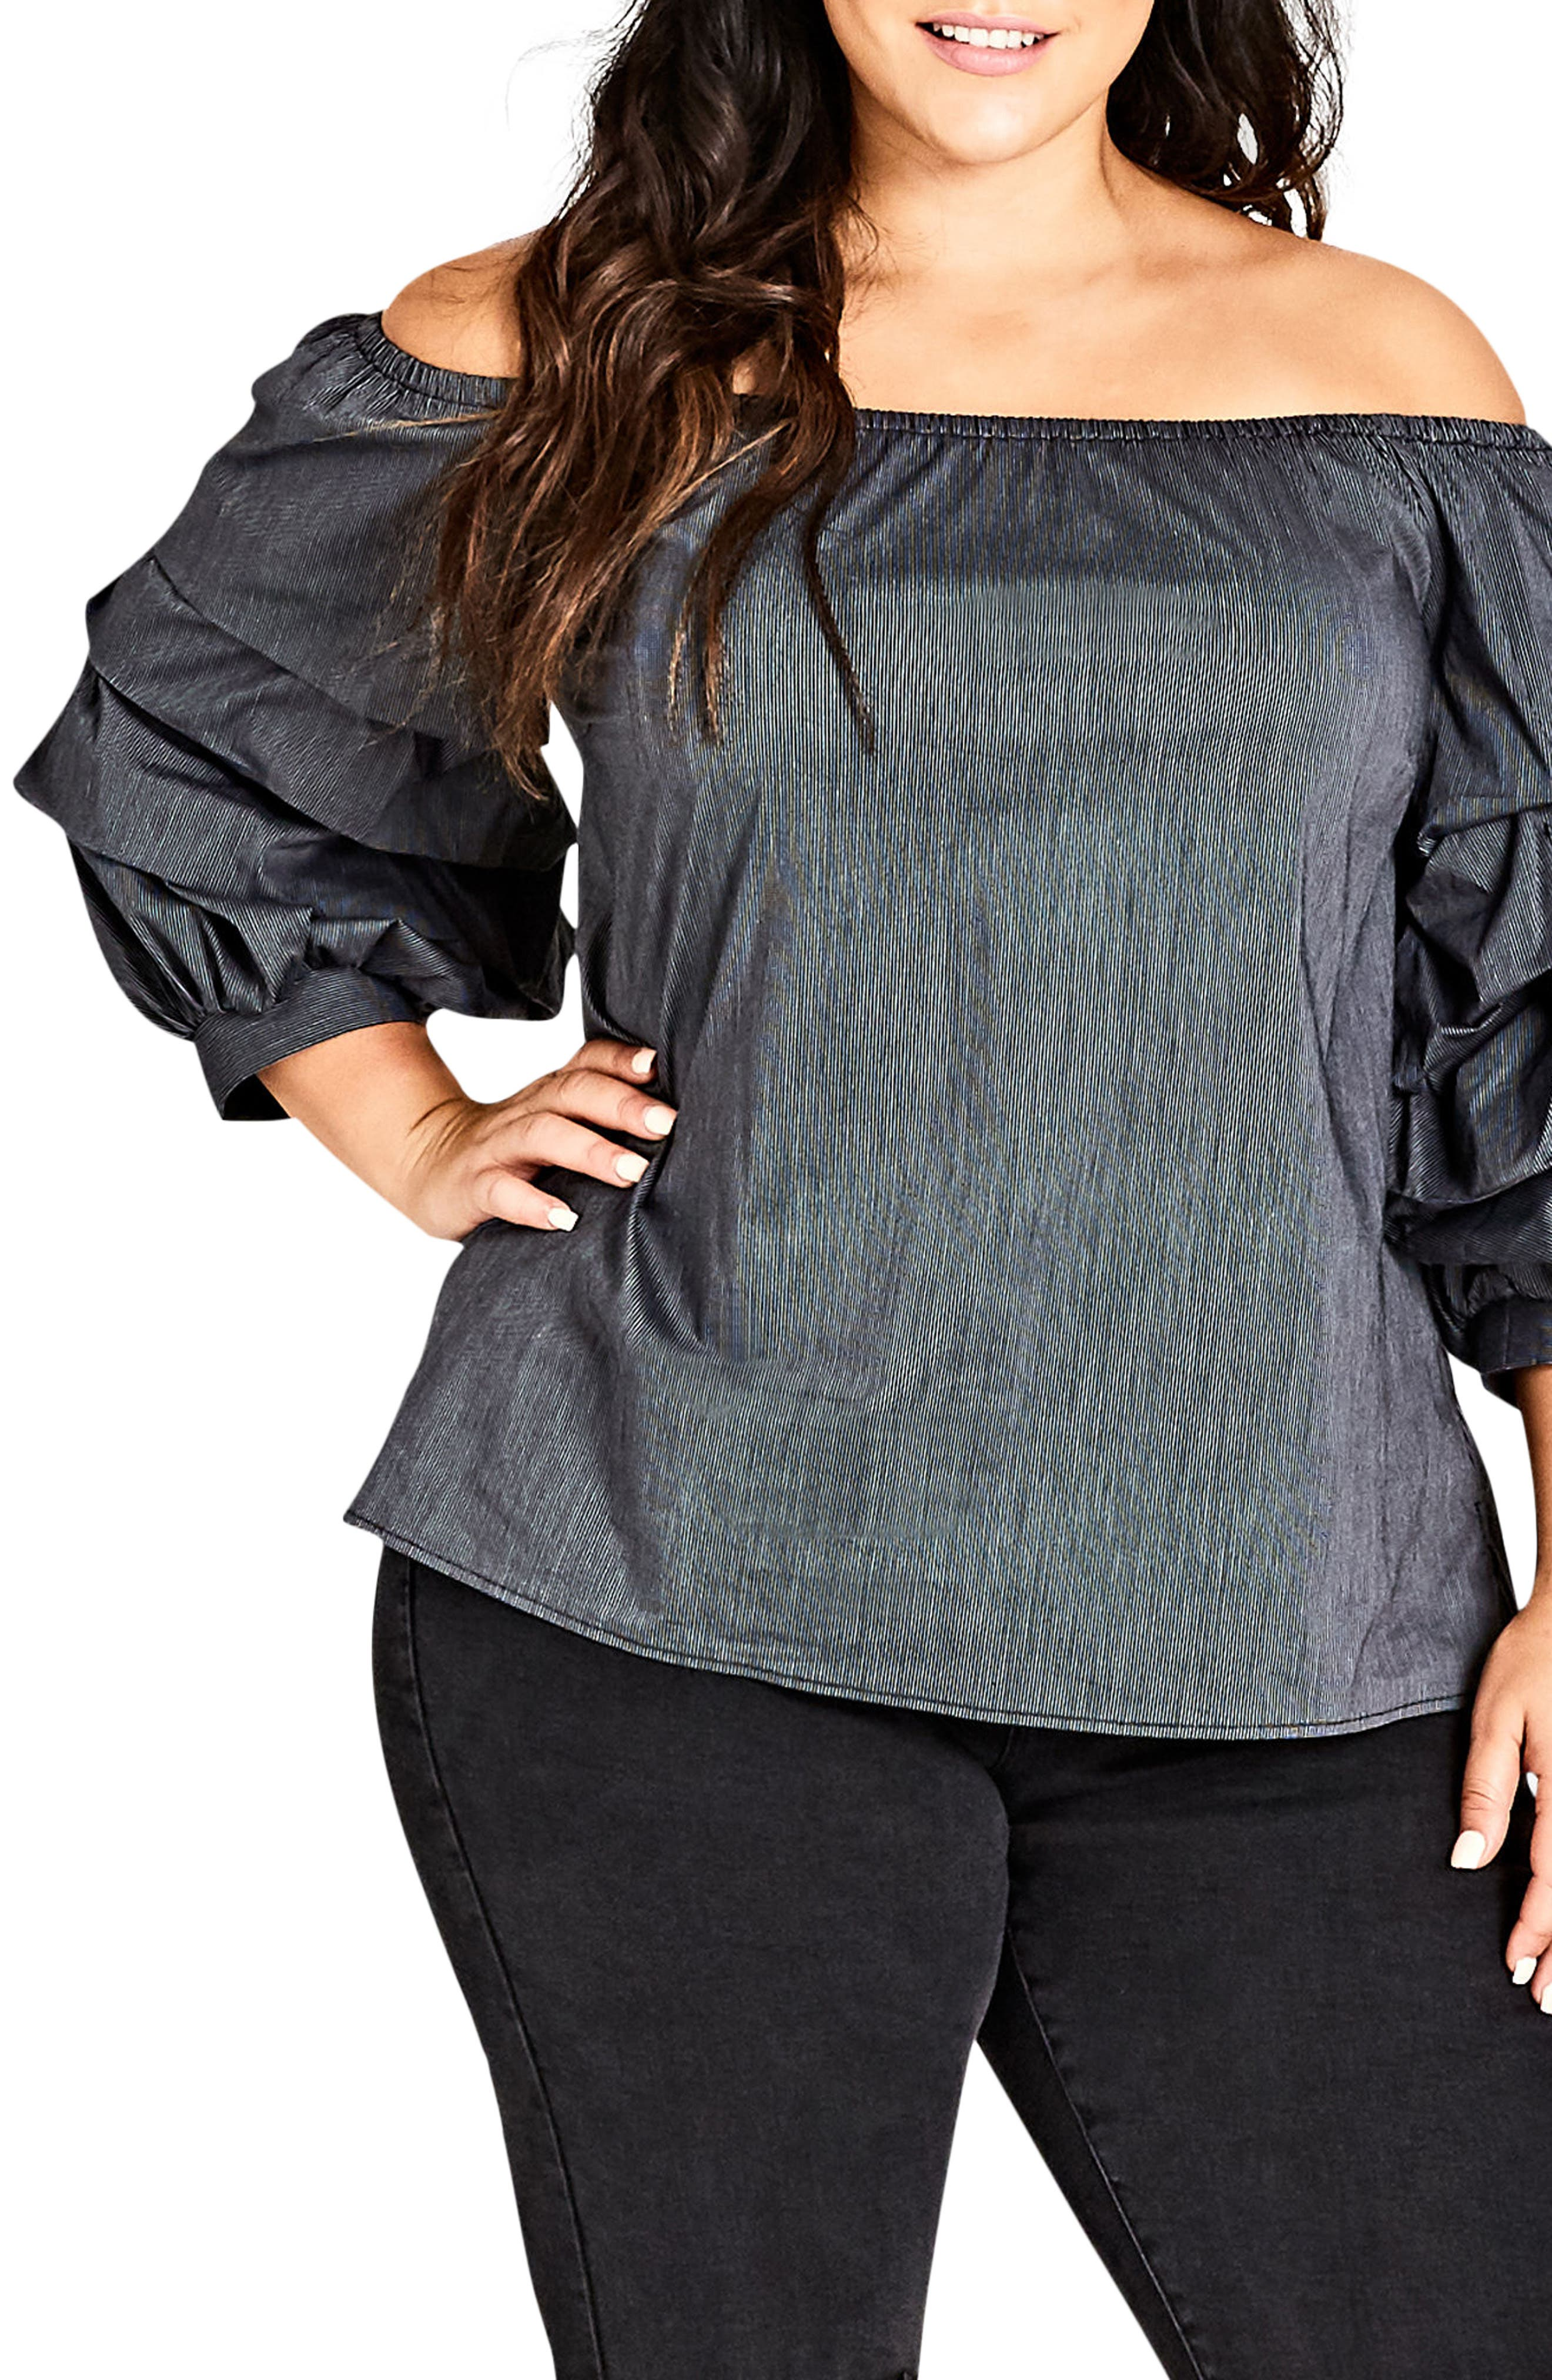 Fancy Sleeve Off the Shoulder Cotton Blend Top,                             Main thumbnail 1, color,                             004